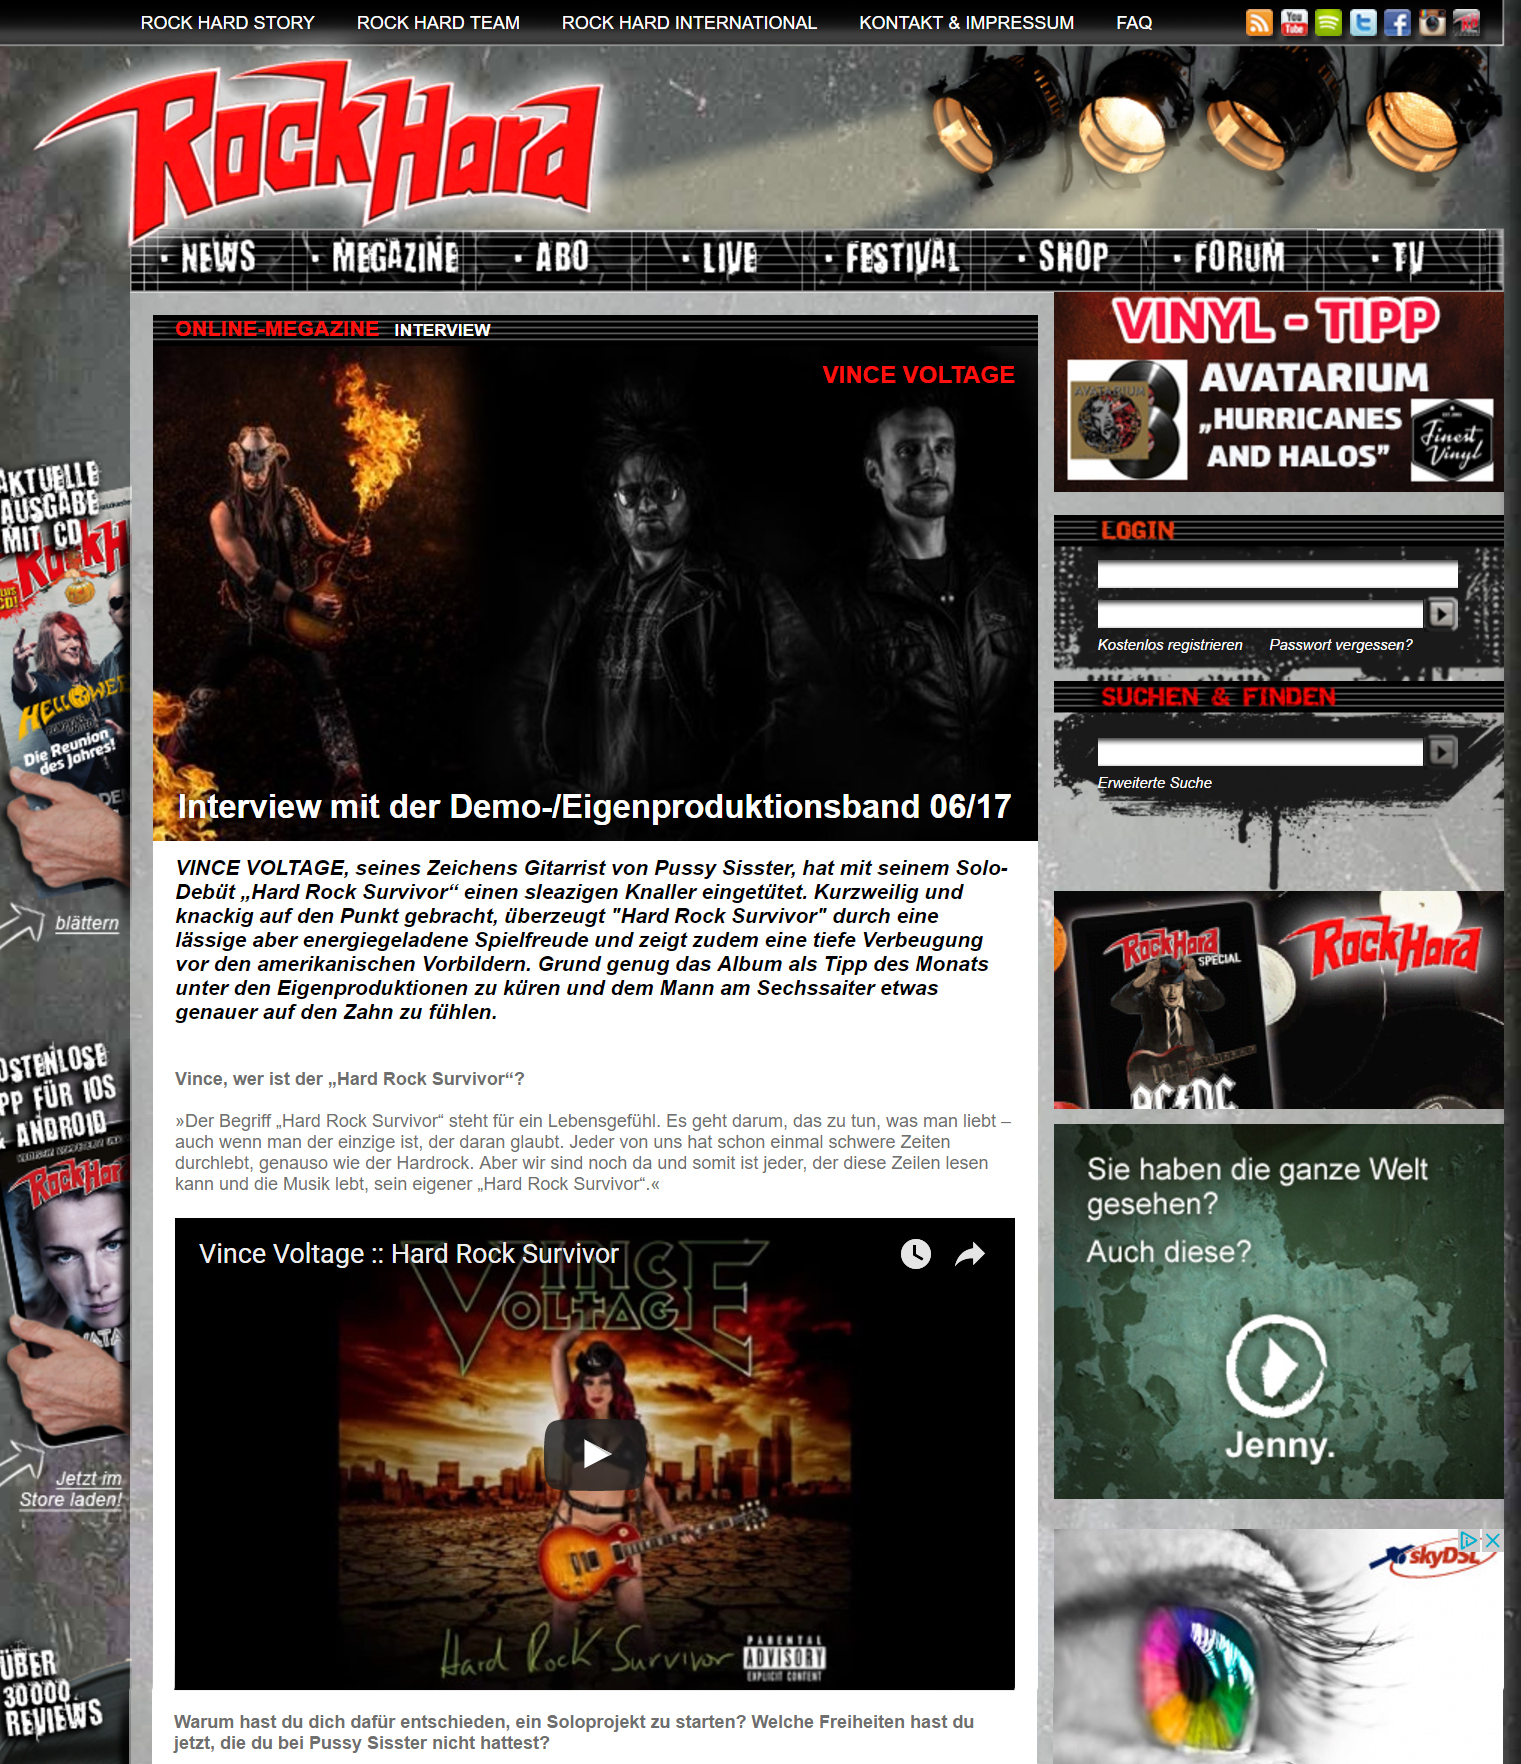 Rockhard magazine interview